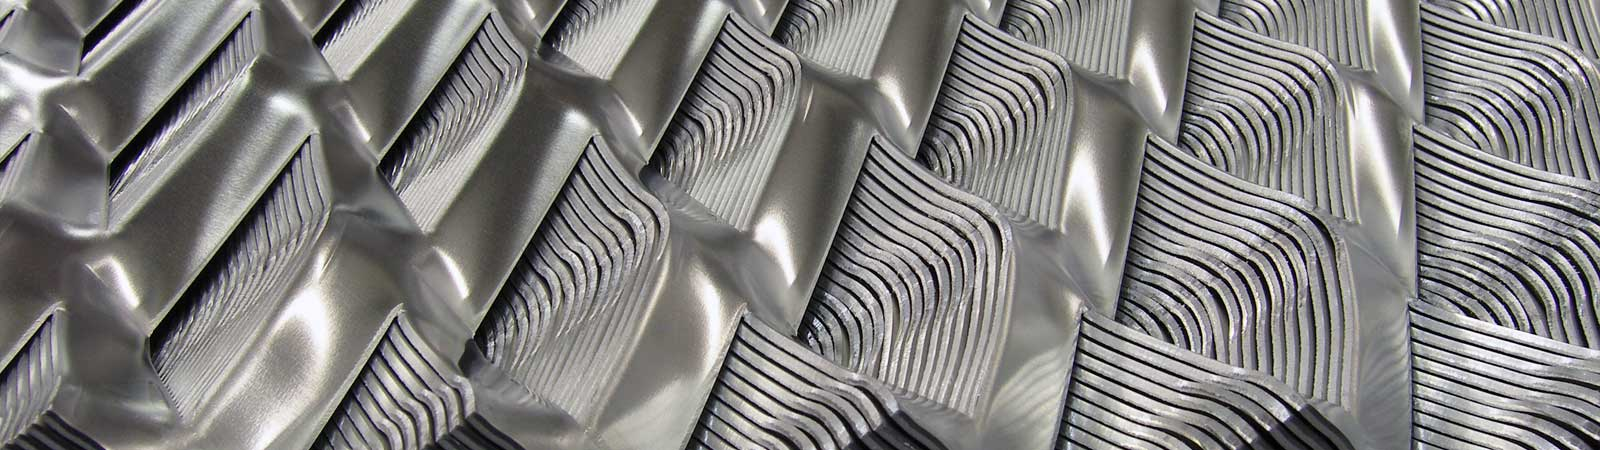 Streched metal sheets